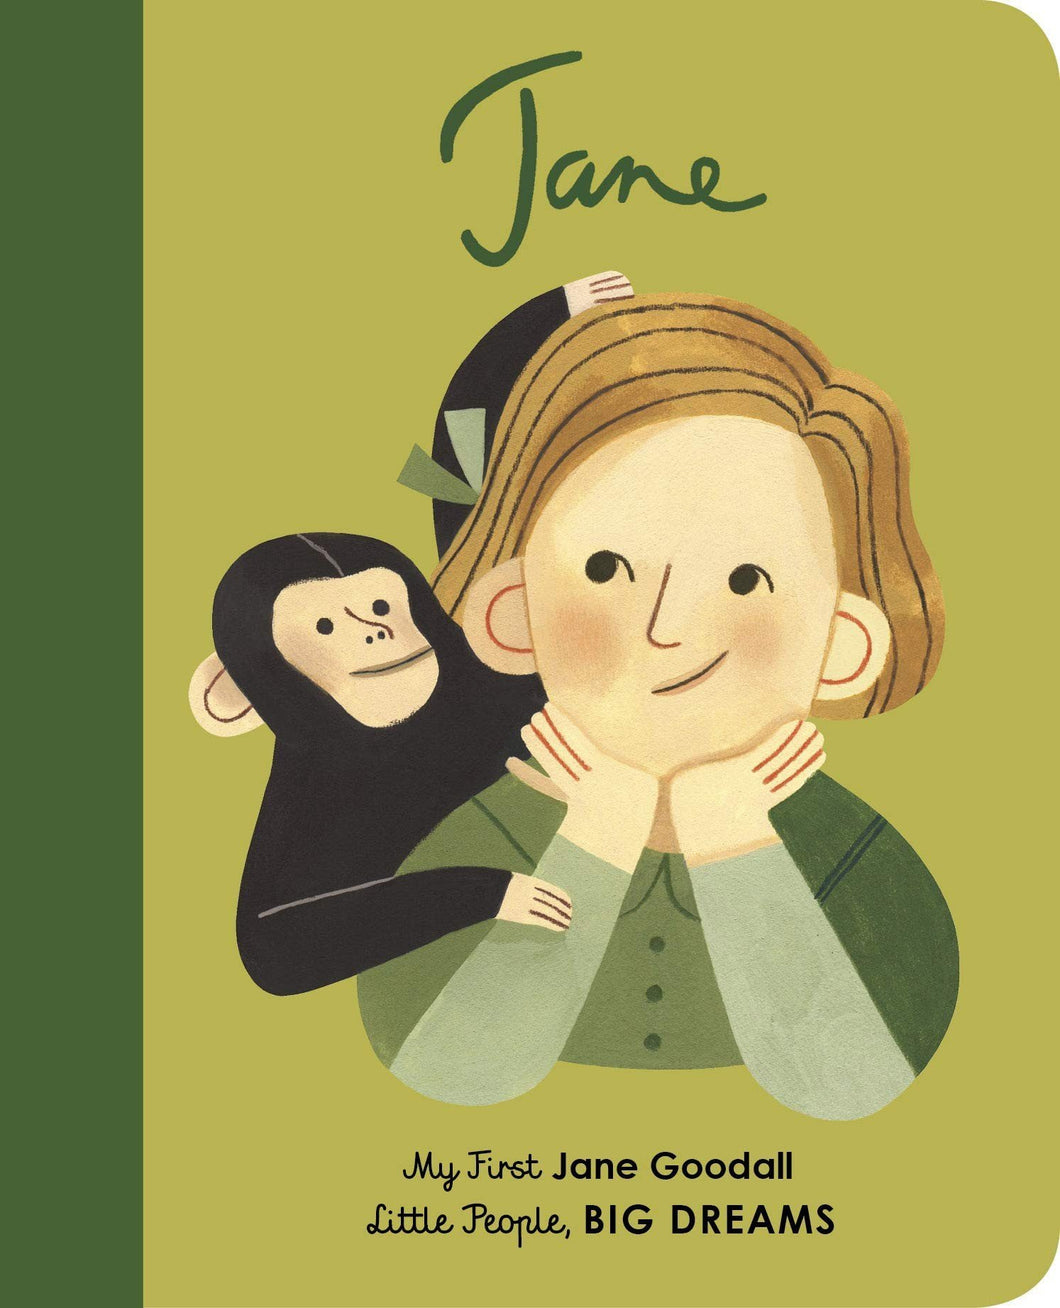 Jane Goodall, a Big Dreams Little People hardback book by Maria Isabel Sanchez Vegara MADE FAR AWAY, WON'T REORDER - jiminy eco-toys